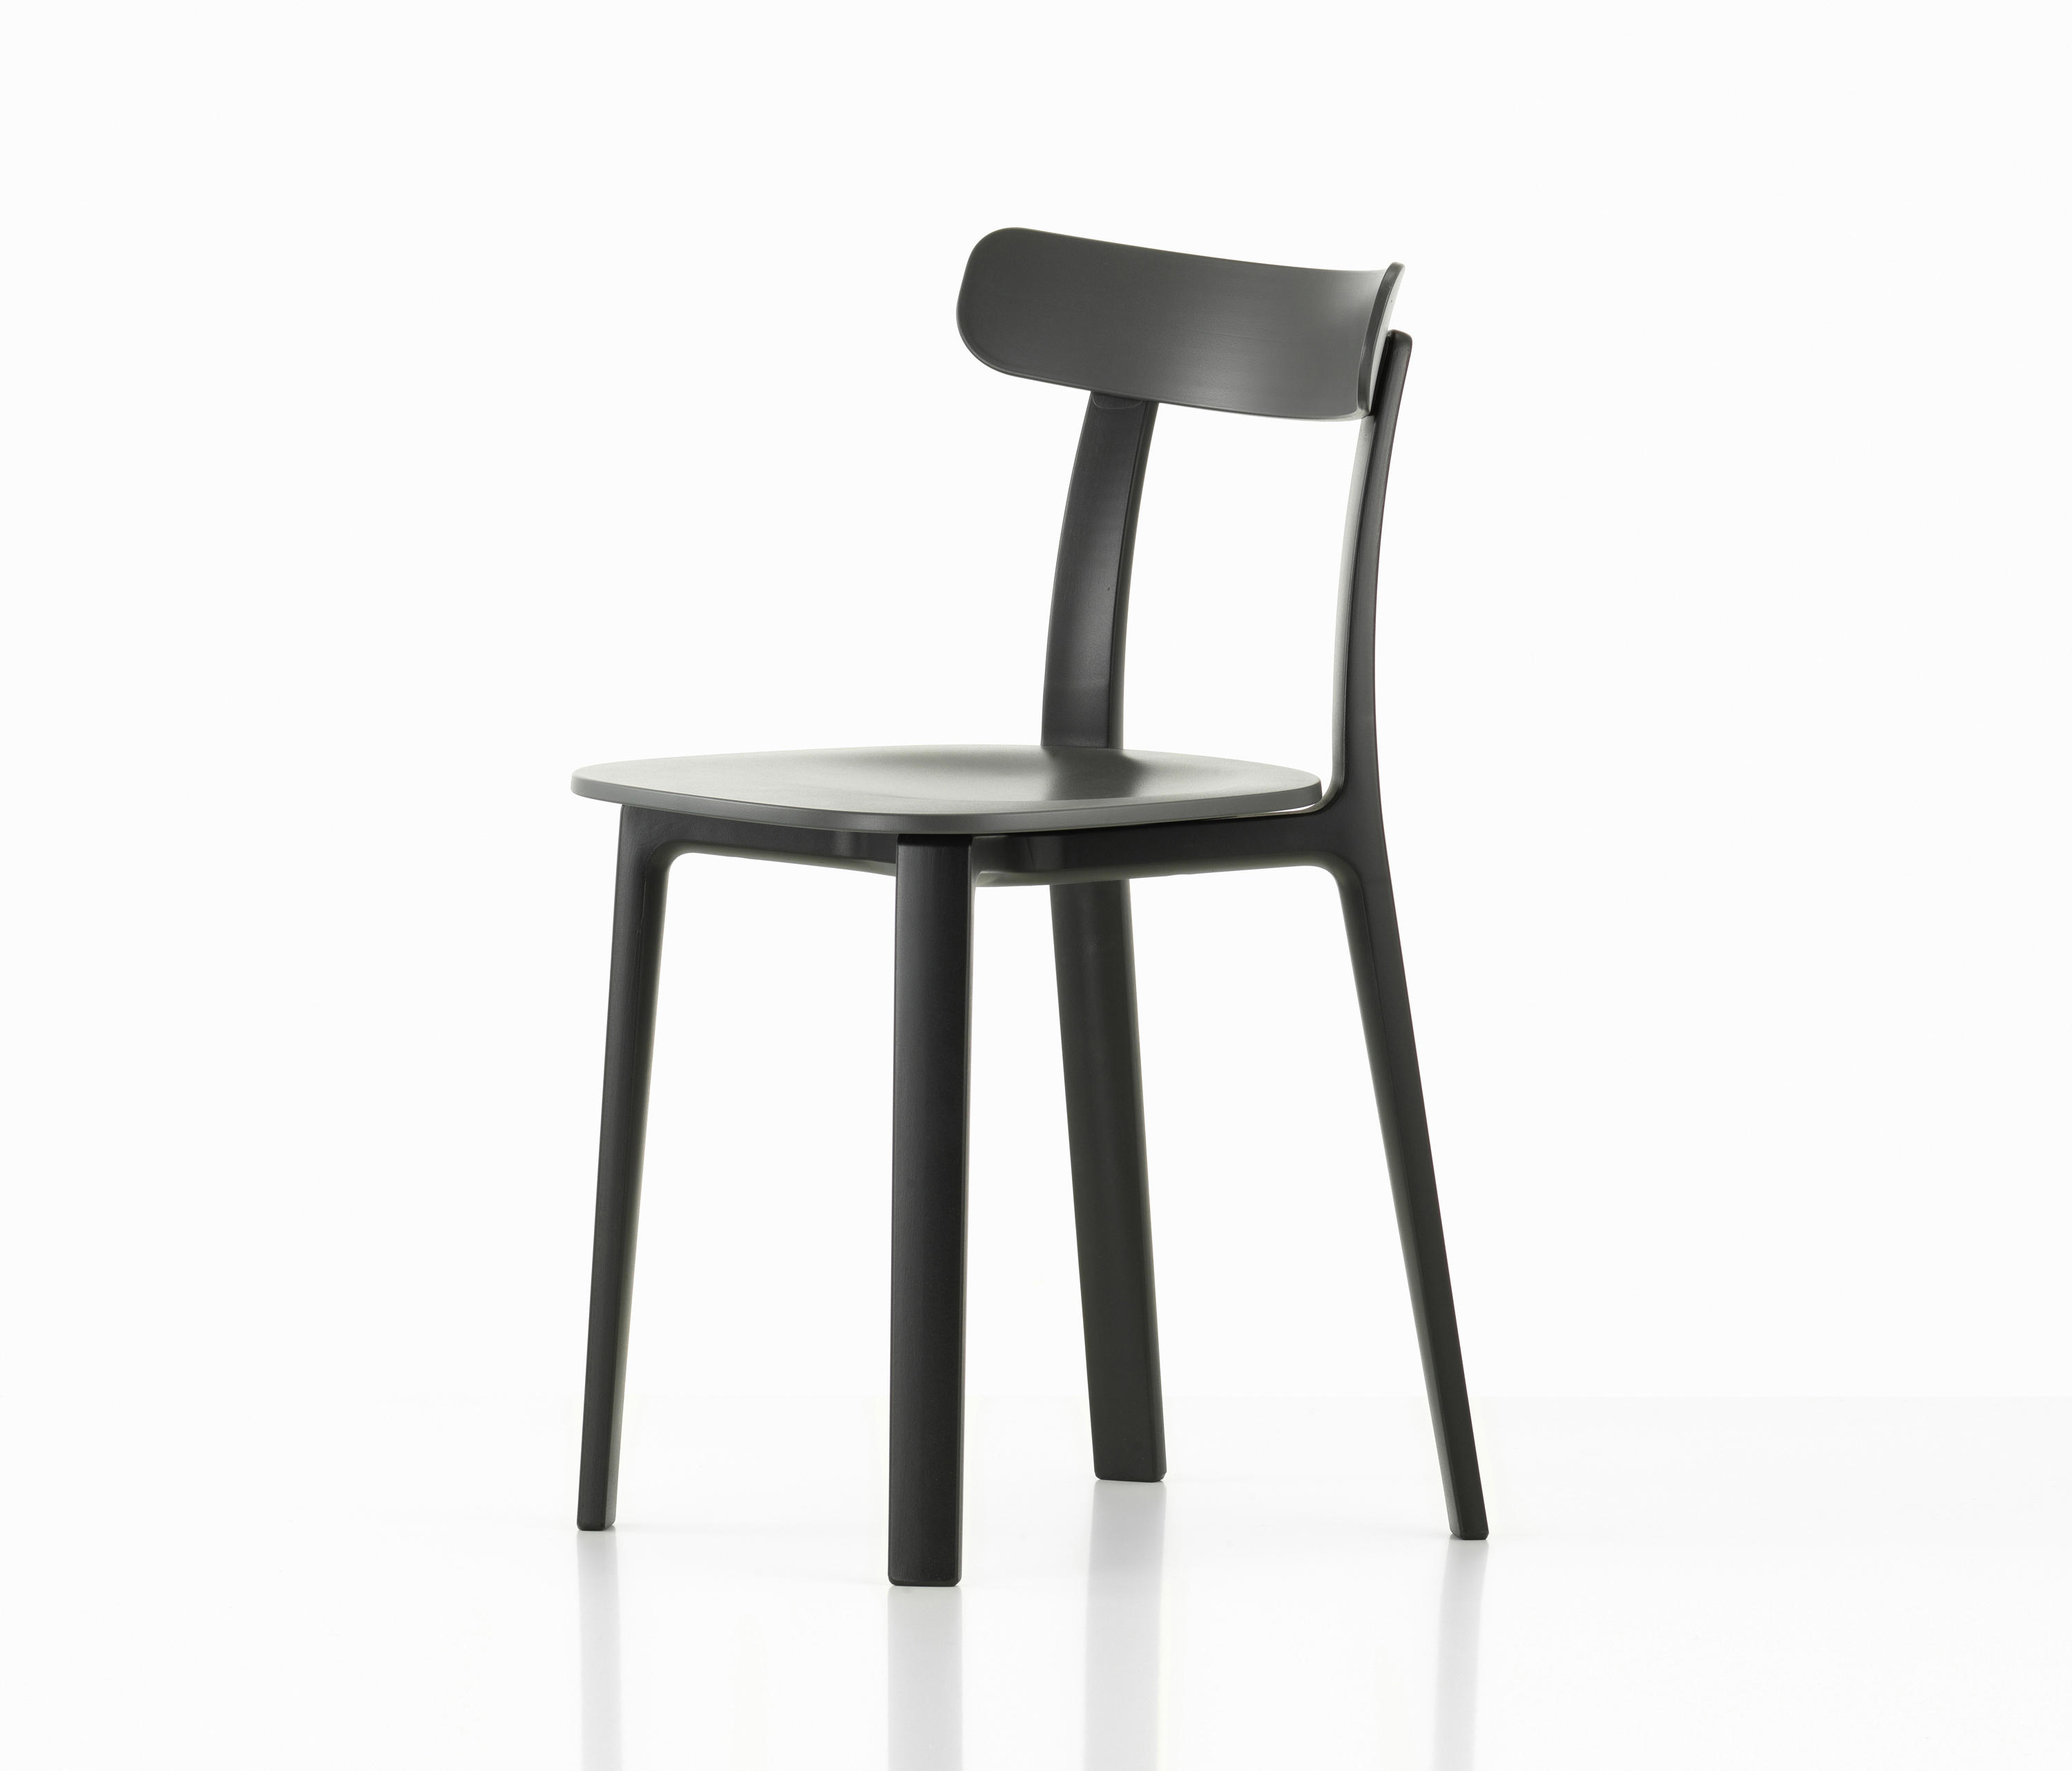 all plastic chair restaurant chairs from vitra architonic. Black Bedroom Furniture Sets. Home Design Ideas